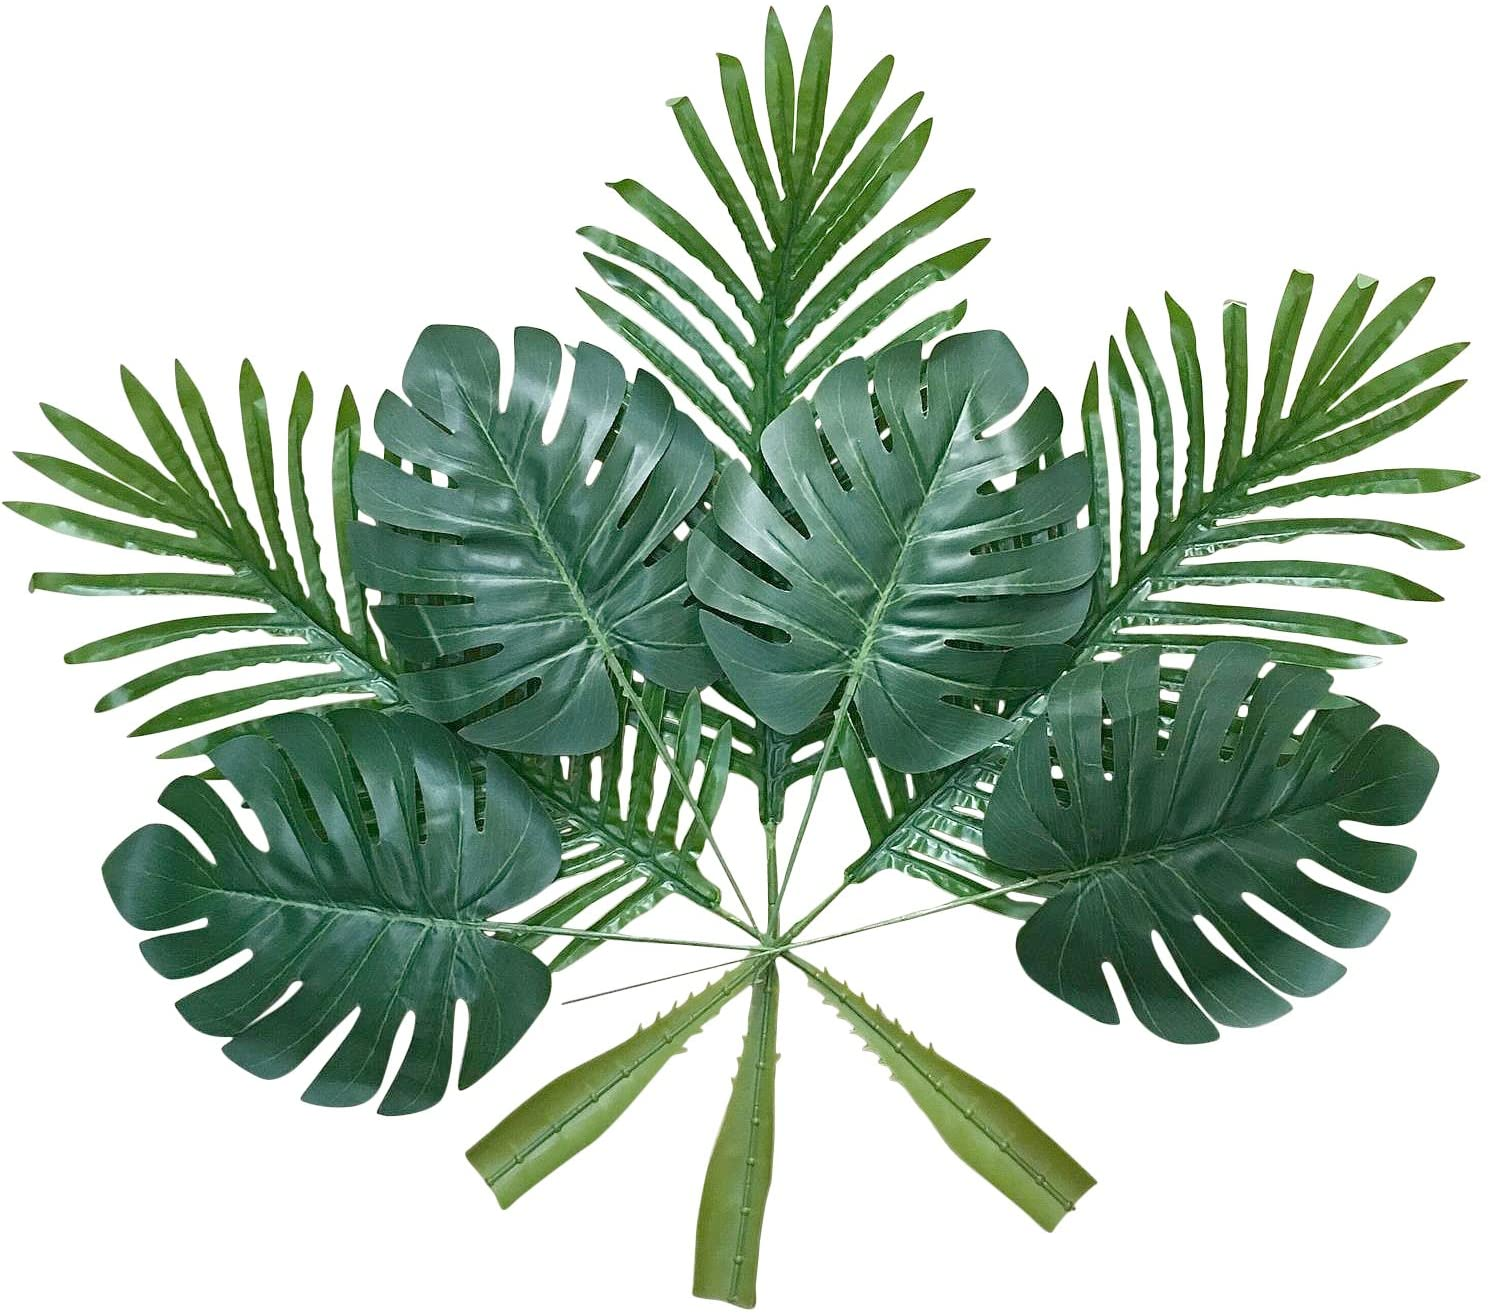 Amazon Com Artificial Palm Leaves With Stem 20 Pcs Tropical Philodendron Monstera Fronds Party Decorations Faux Palm Tree Plant Leaf Fake Imitation Ferns Branches Home Kitchen Plastic Decor Af49 Kitchen Dining